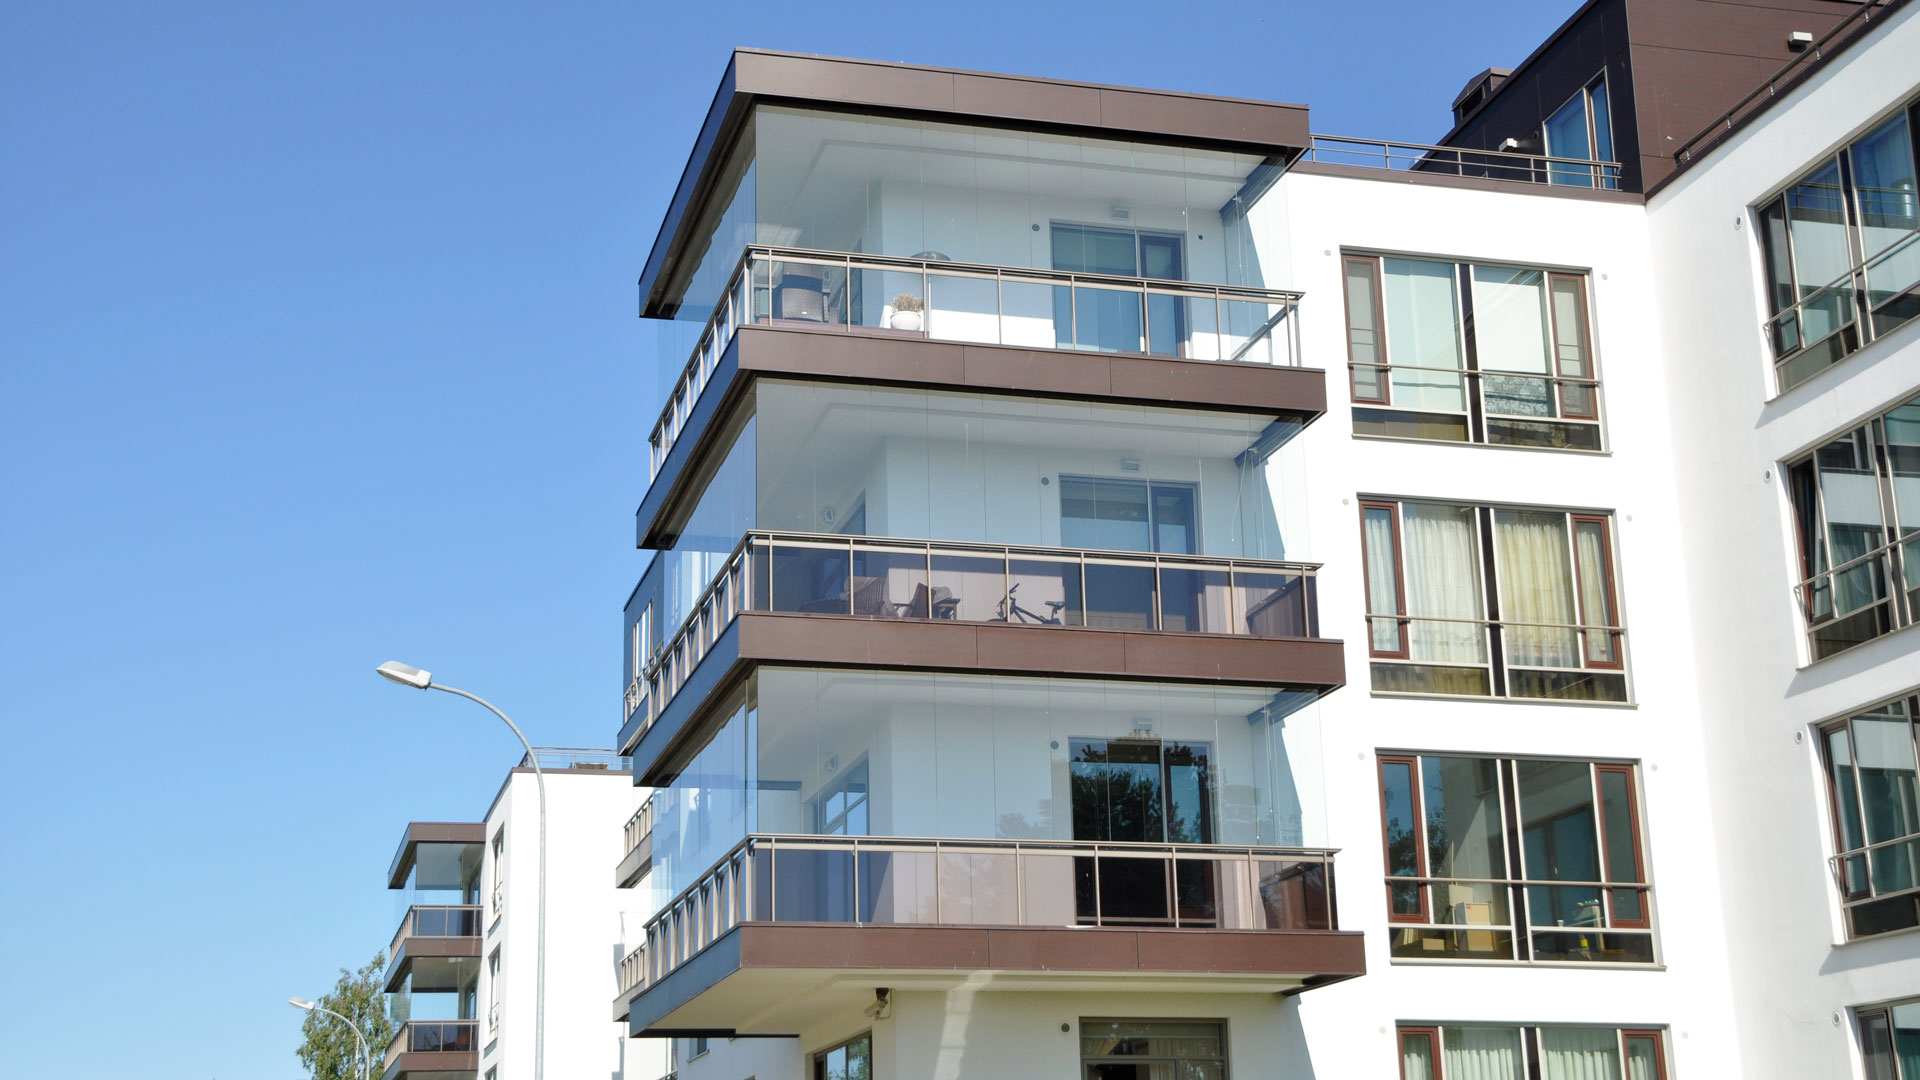 Glazing series for private houses and apartments